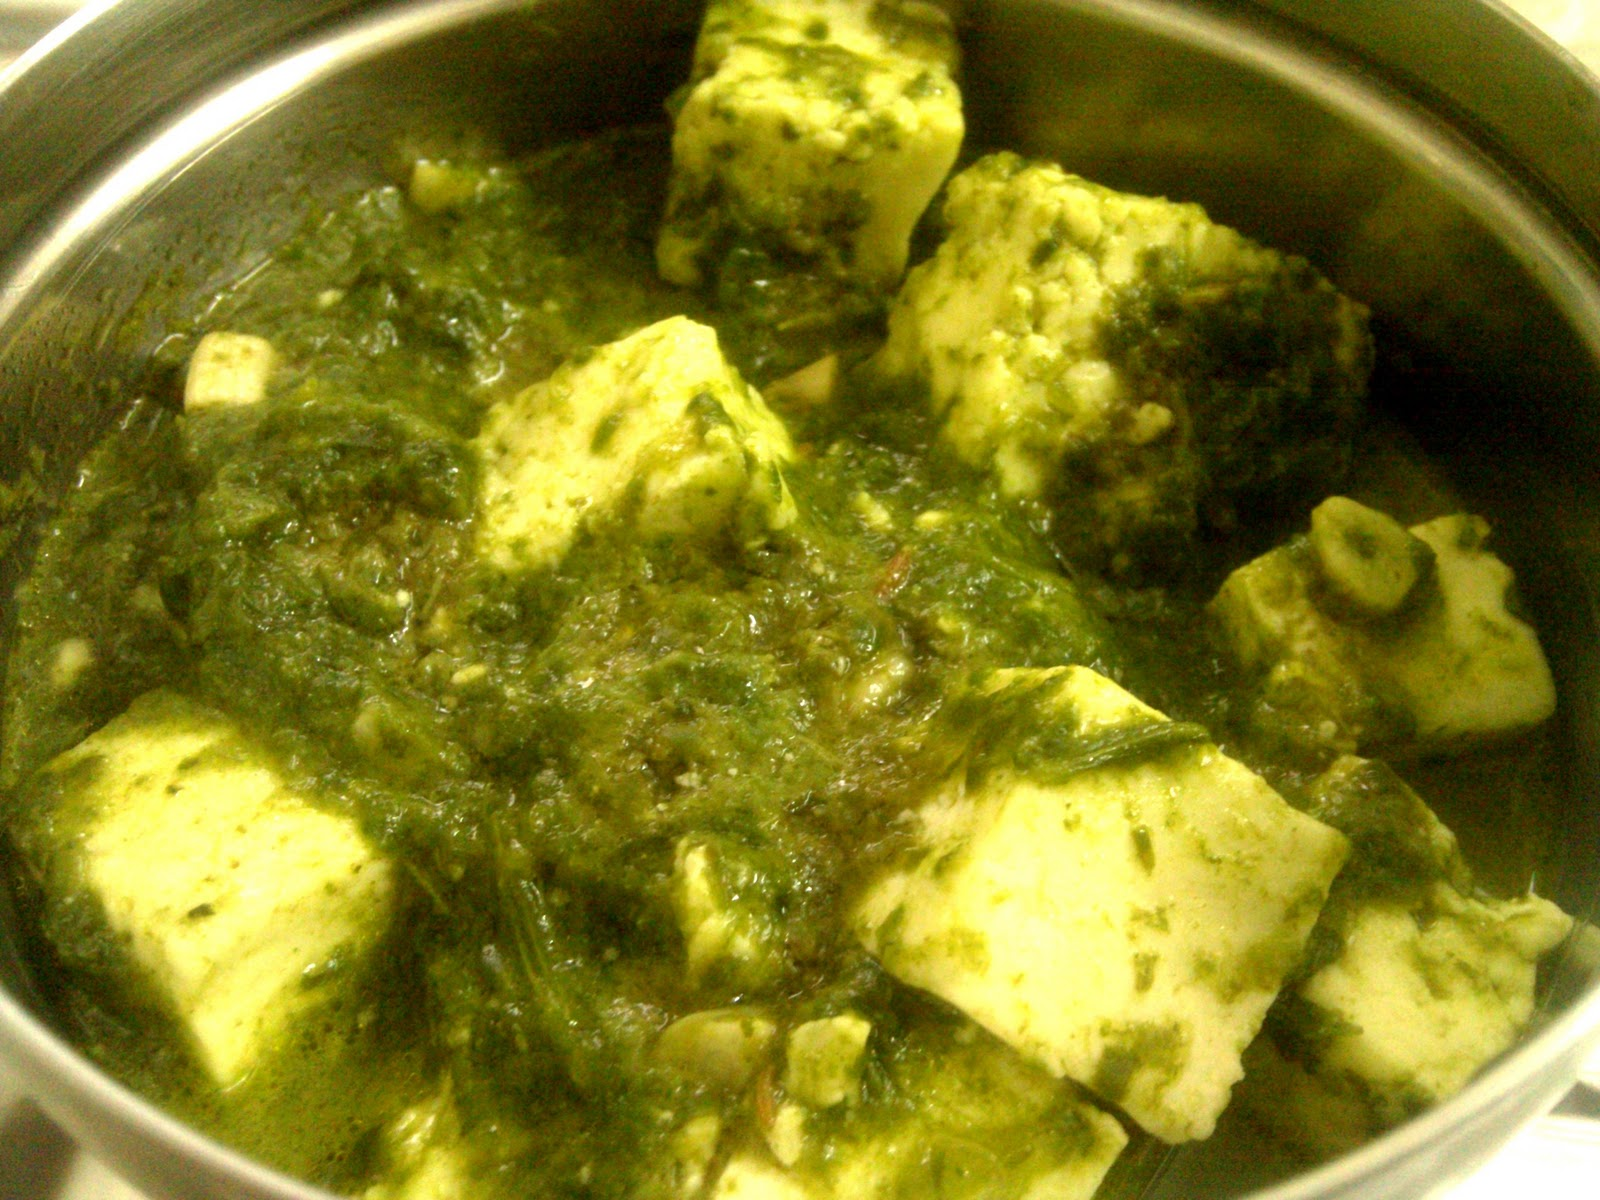 Sumthinz Cooking: Subzi: 10 Minute Super Yum Palak Paneer